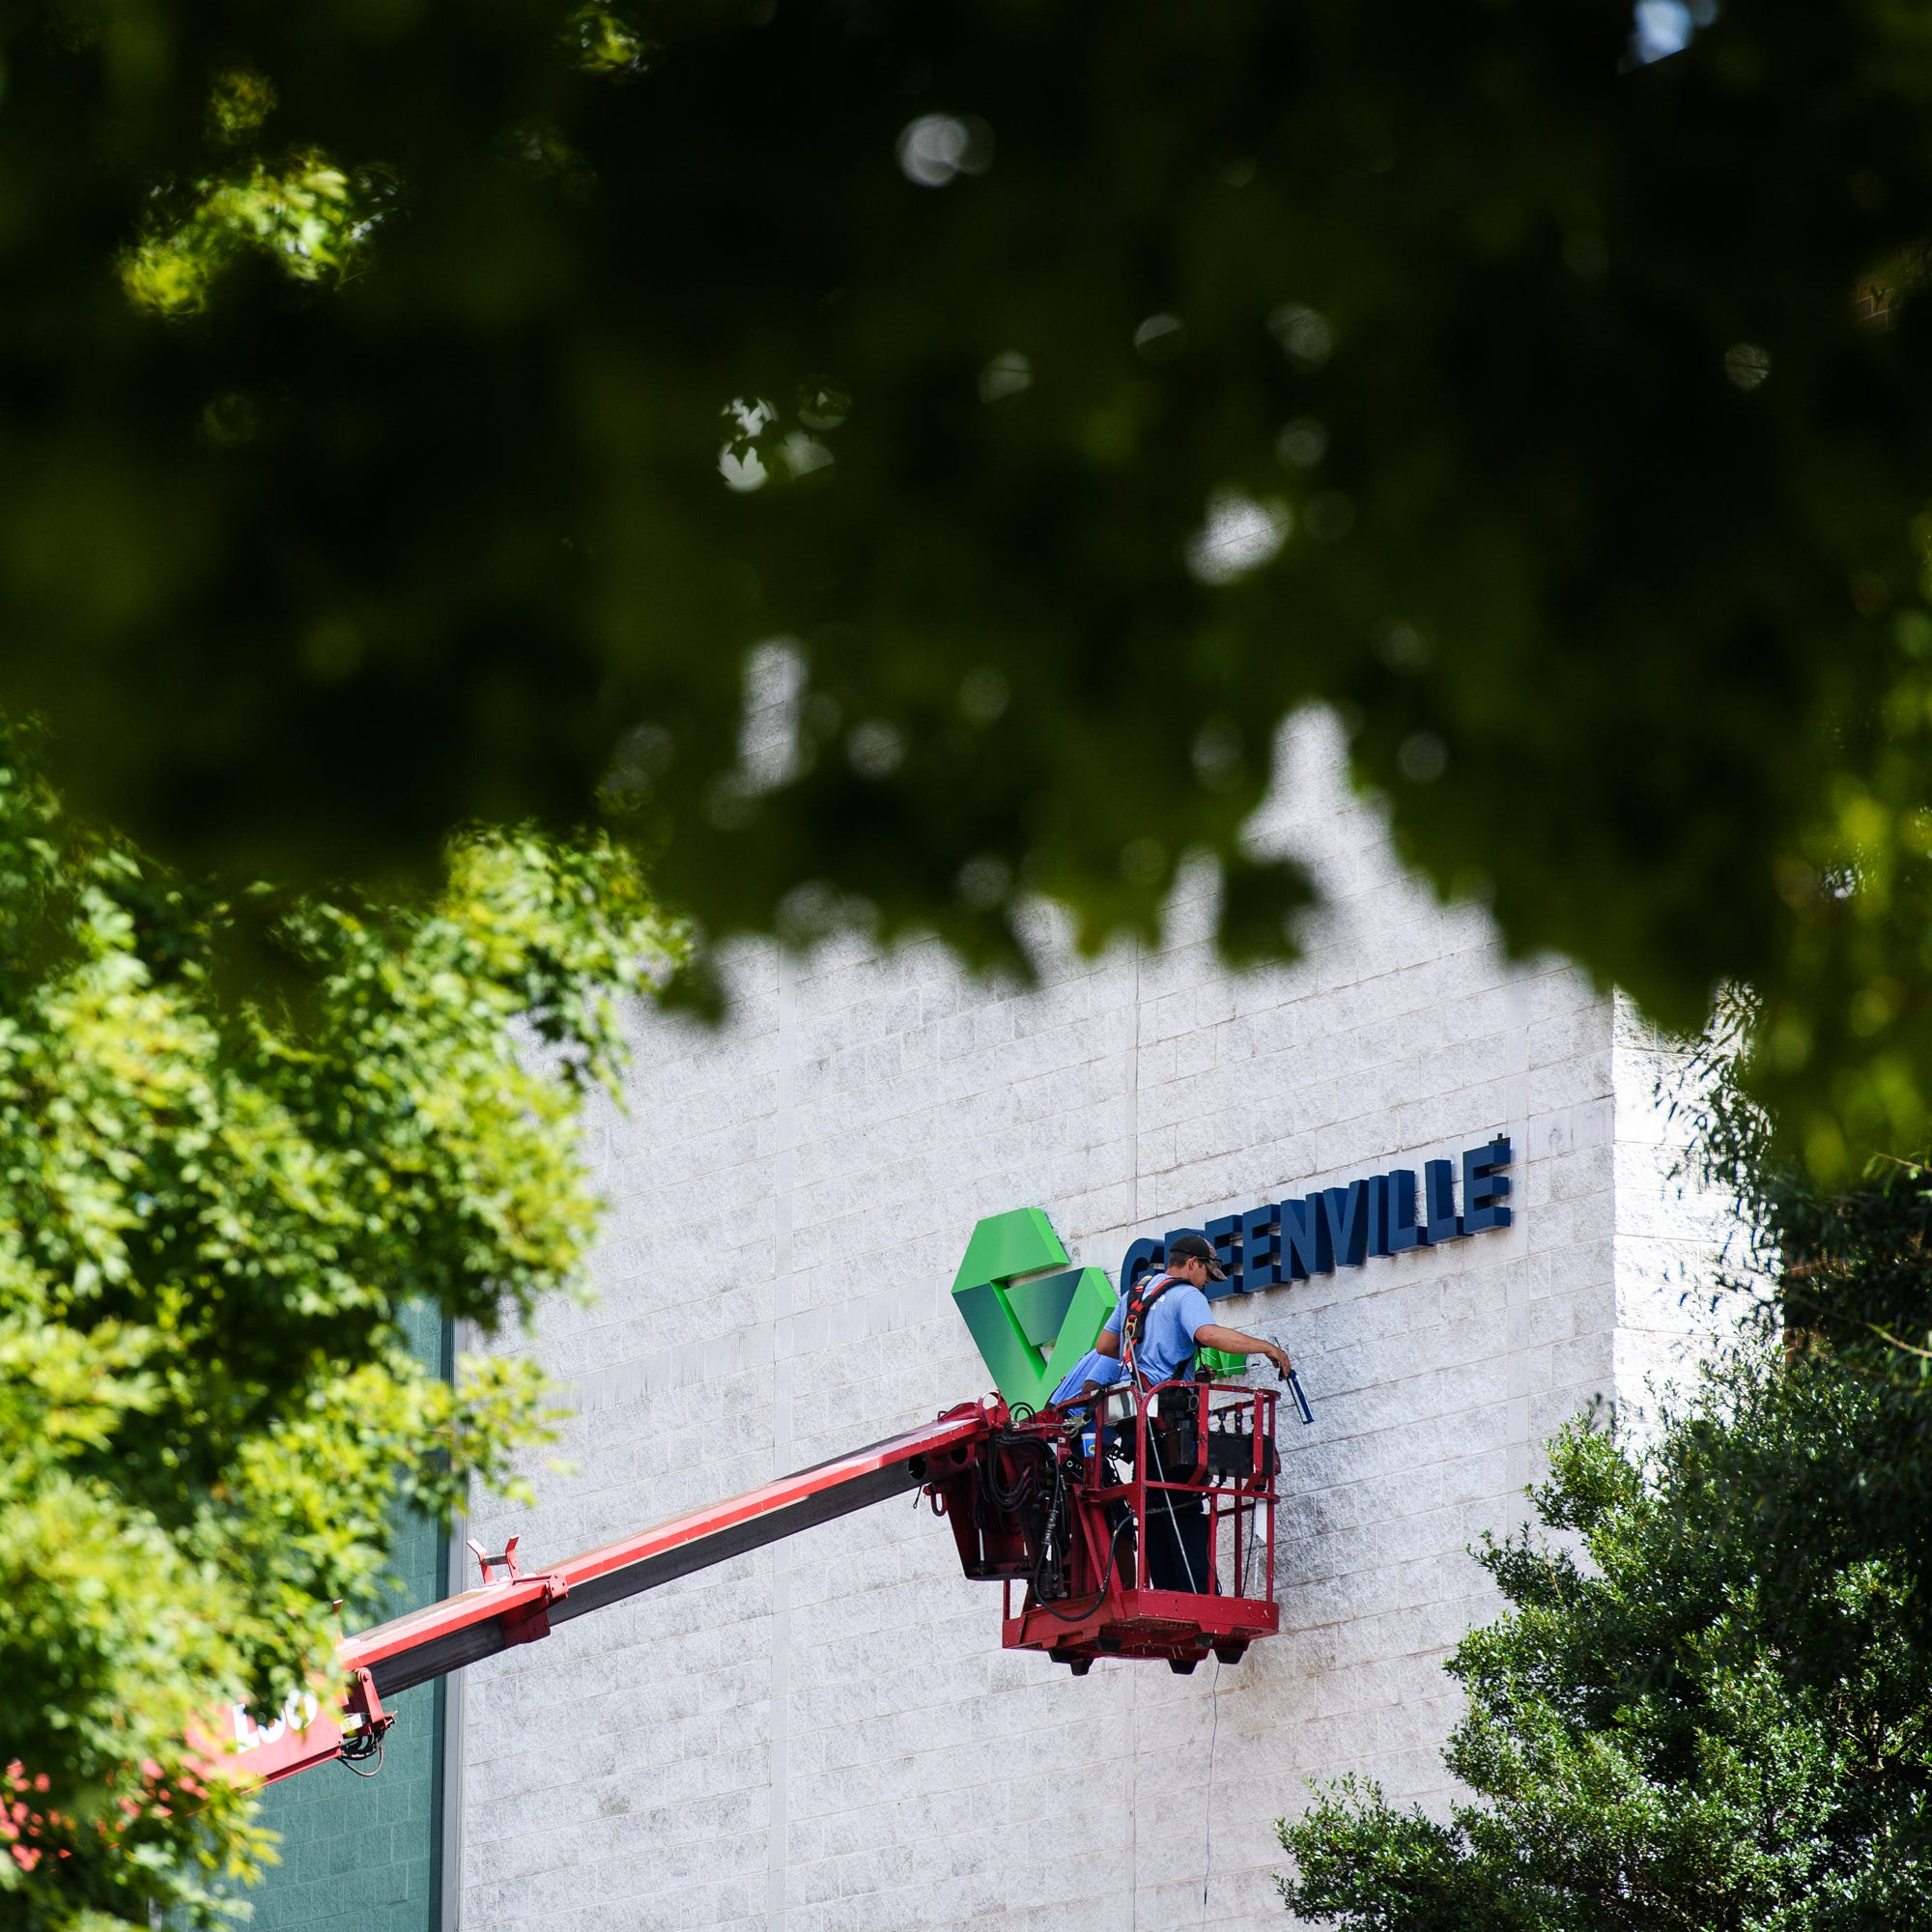 TD Convention Center rebranded to focus on city of Greenville